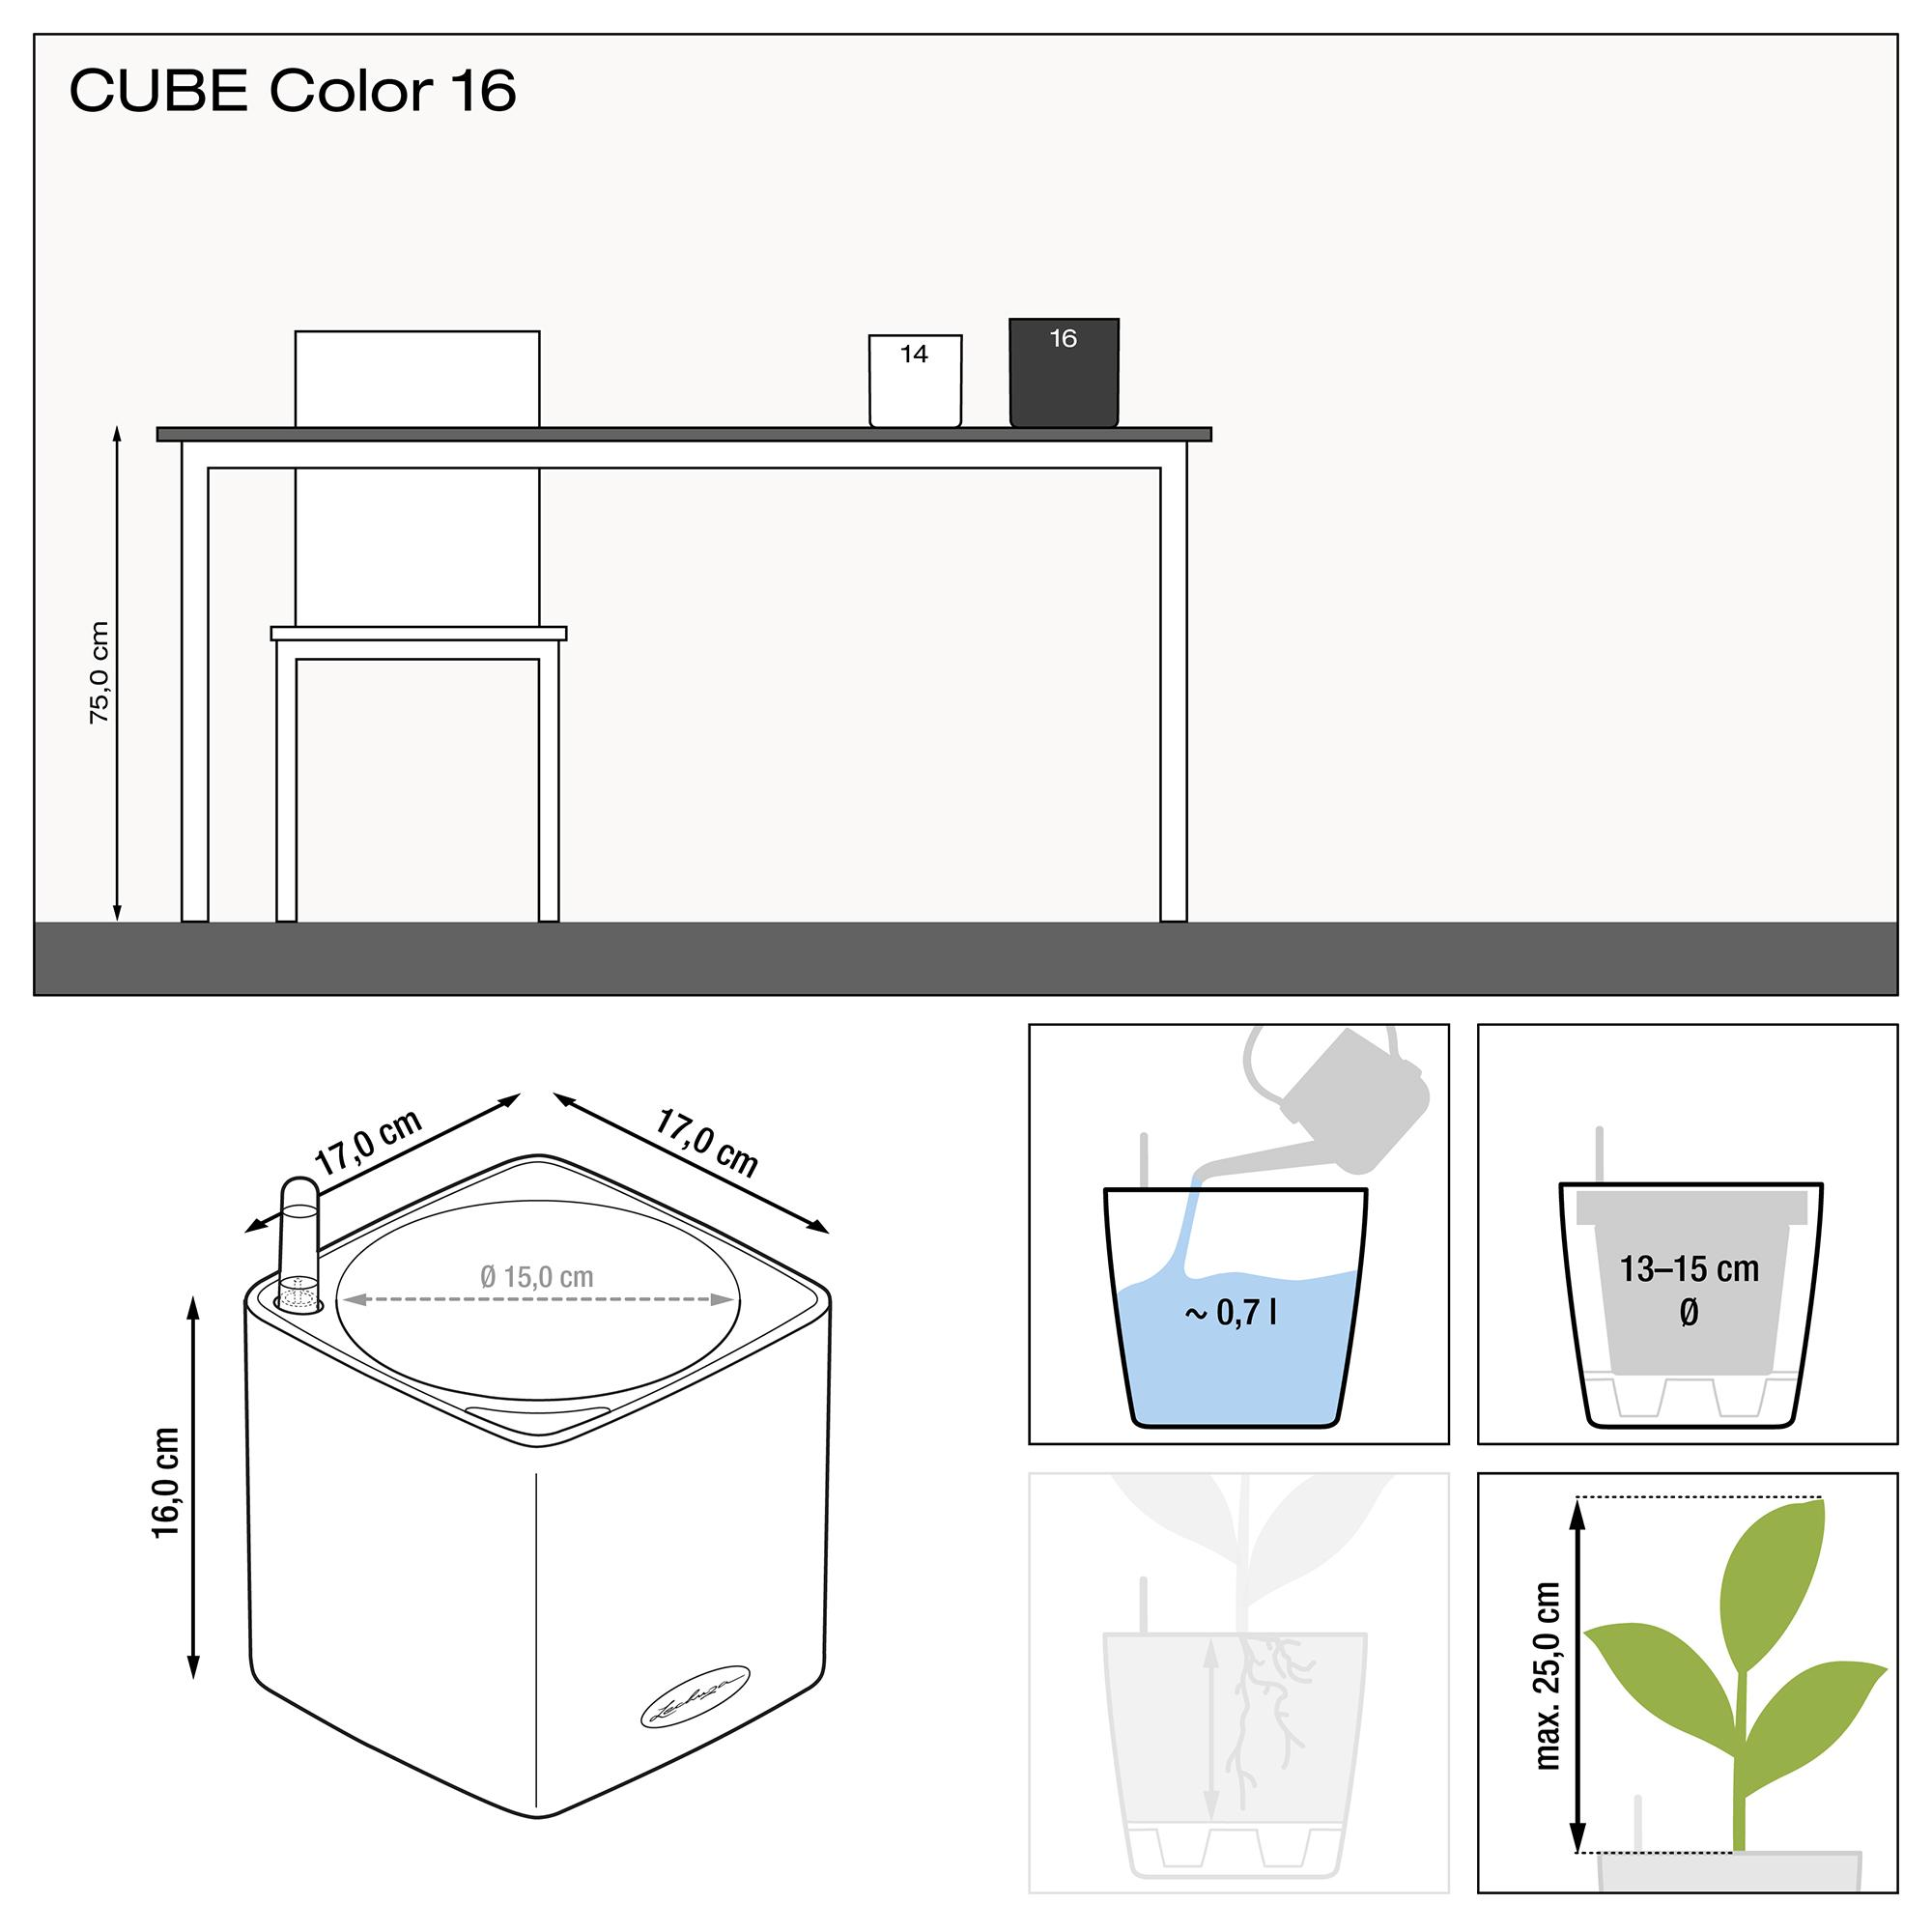 CUBE Color 16 white - Image 2